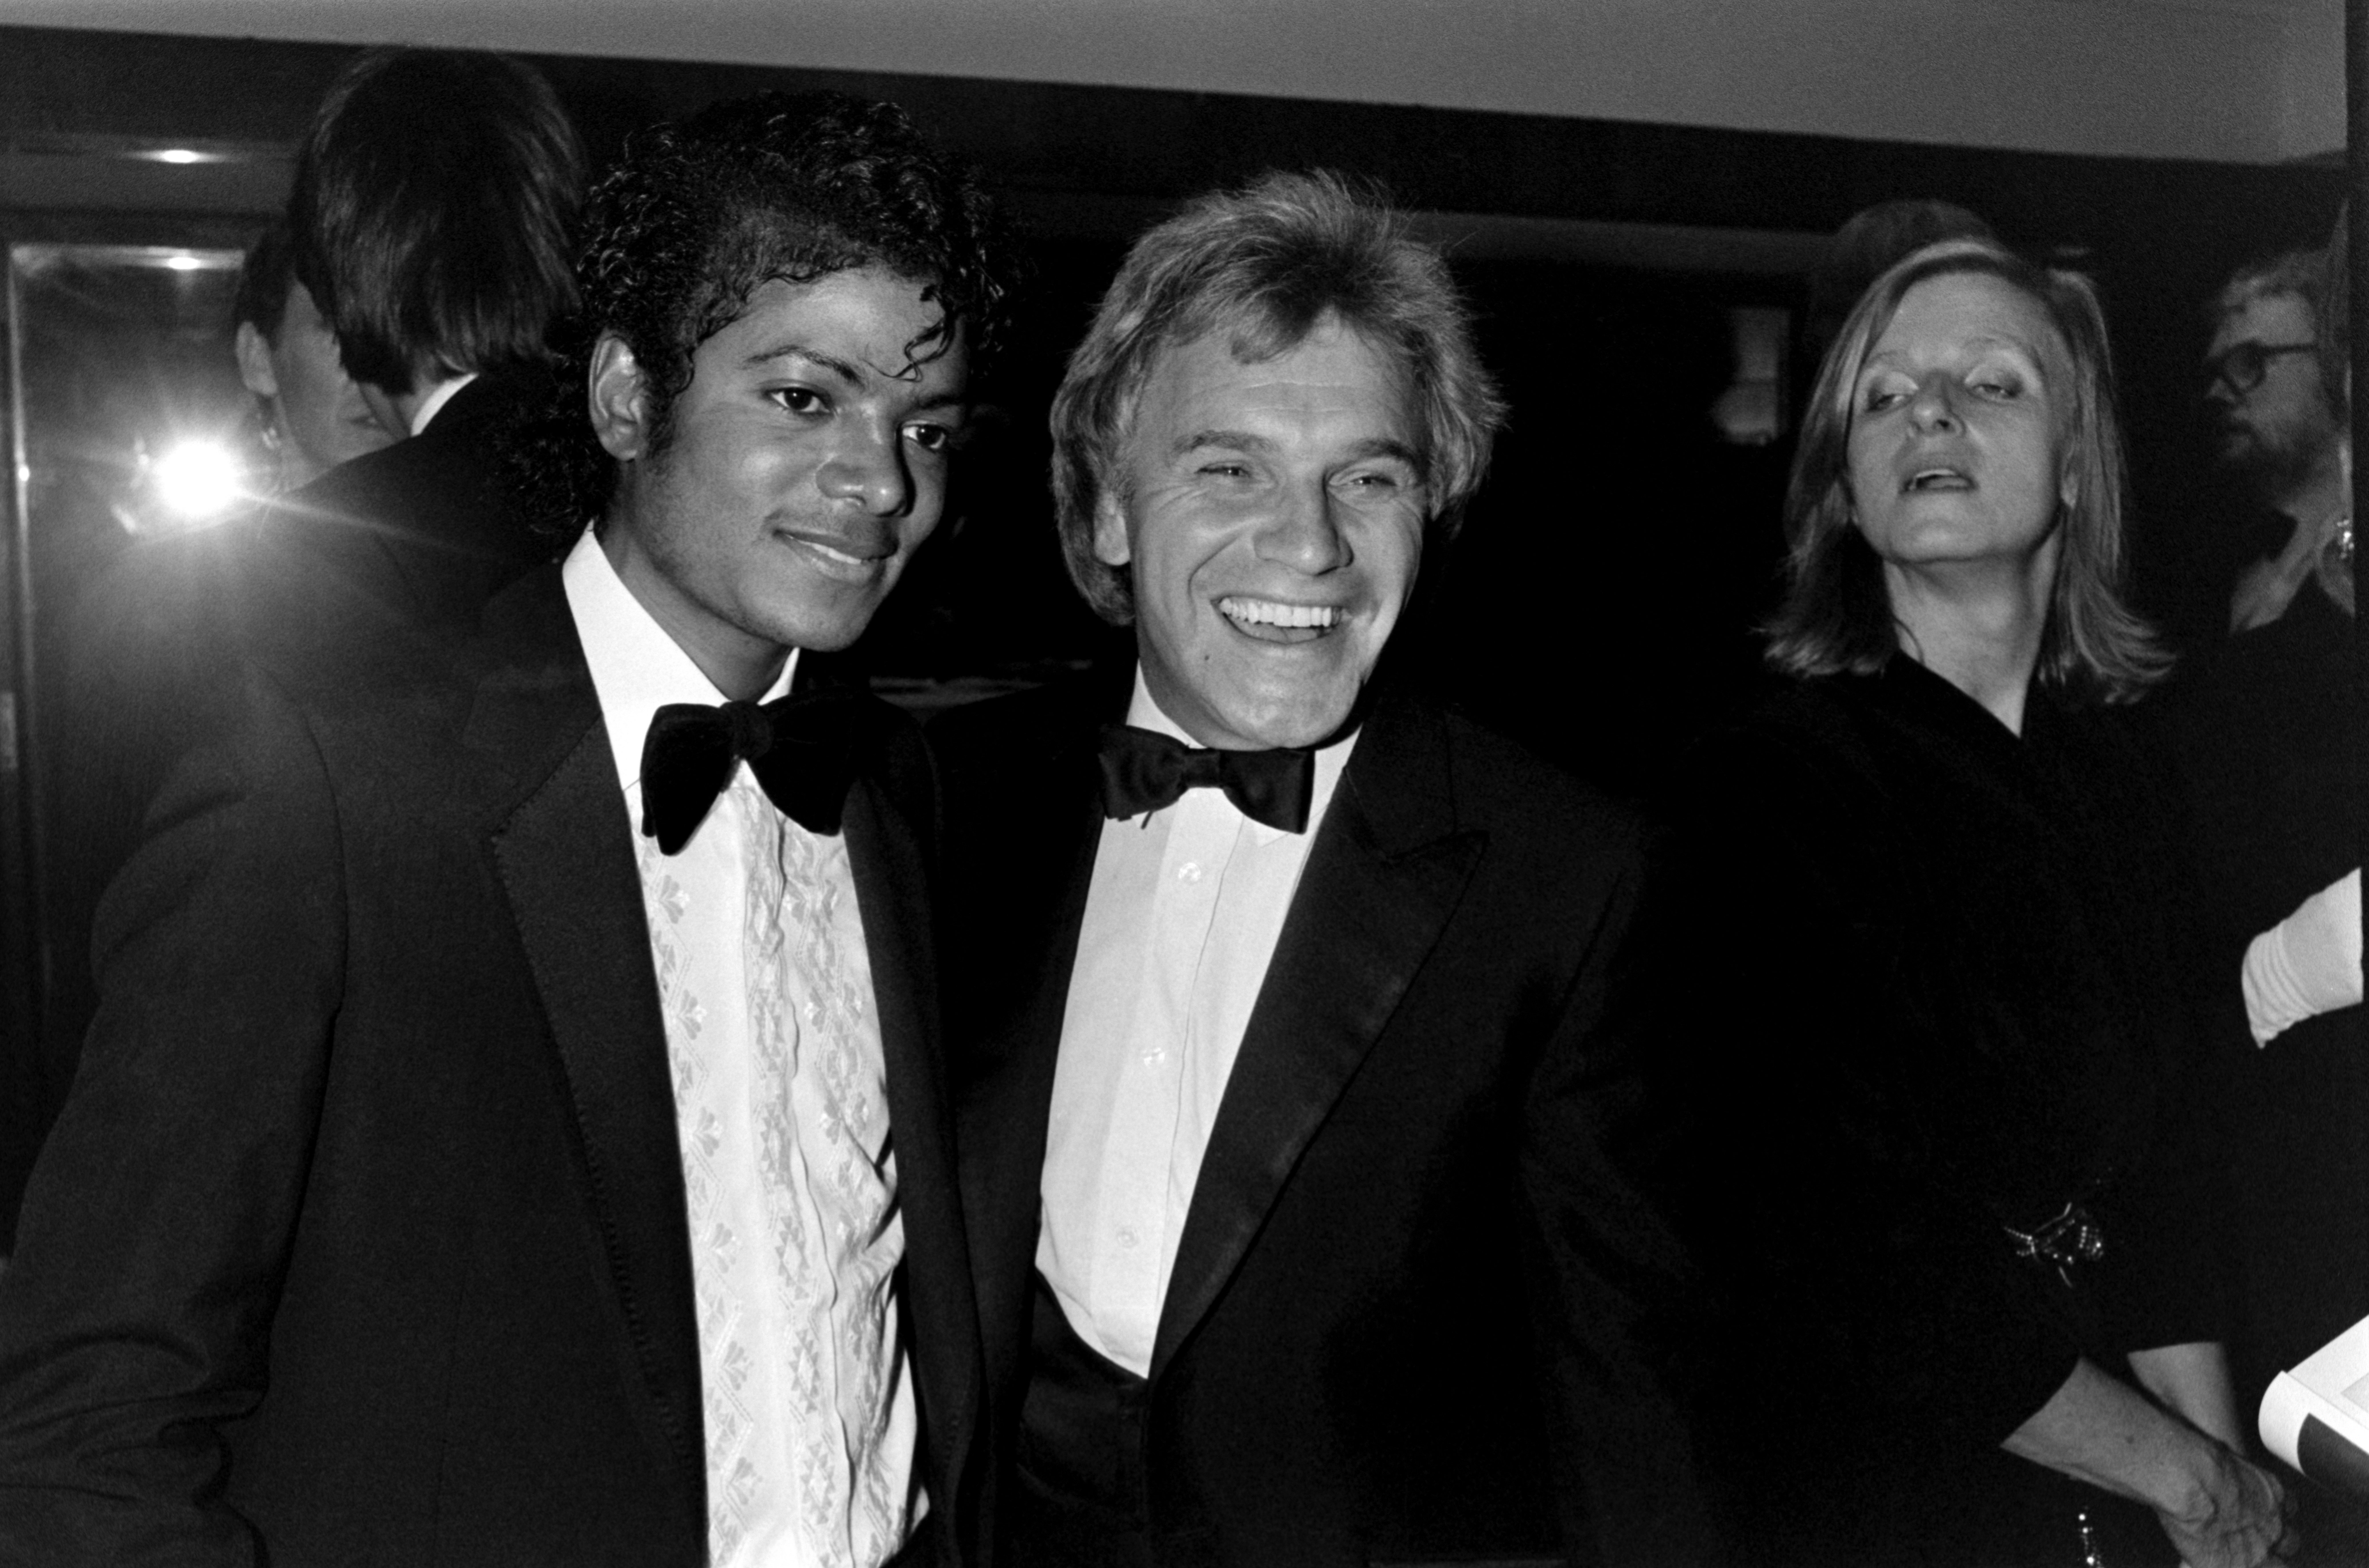 Freddie Starr with a young Michael Jackson at the Brit Awards in London,1983 | Photo: Getty Images